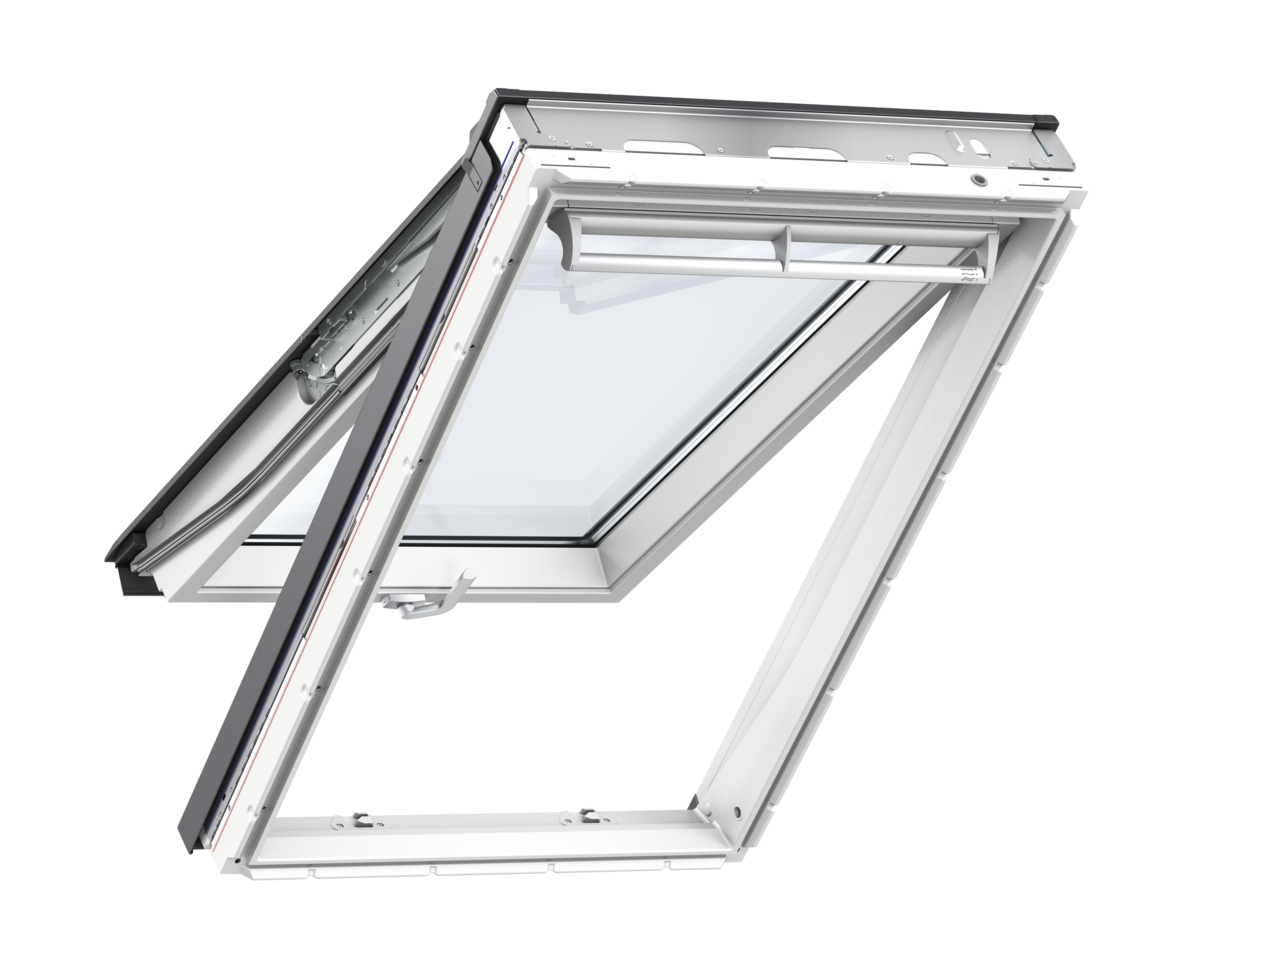 Velux GPU PK10 940 x 1600mm Top Hung 60Pane Roof Window - White Polyurethane